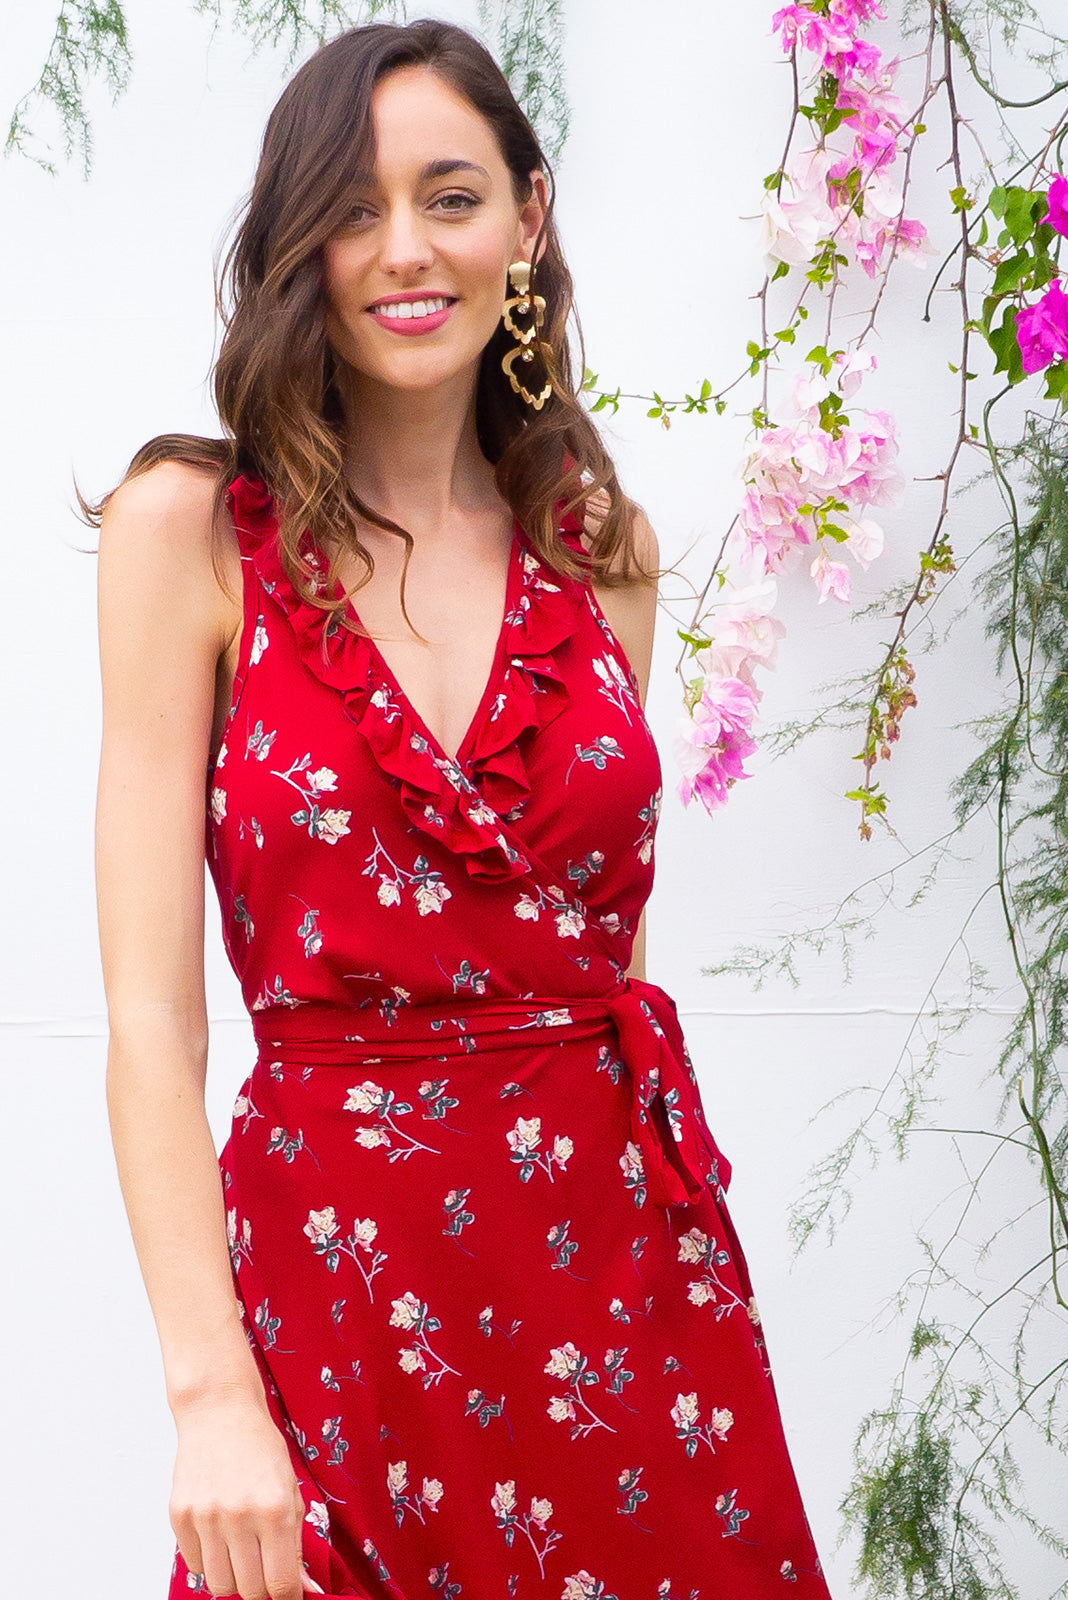 Pablo Red Fling Midi Wrap Dress features a flattering wrap around shape, sleeveless bodice with a frill and comes in a rich warm red with a small floral print on 100% rayon